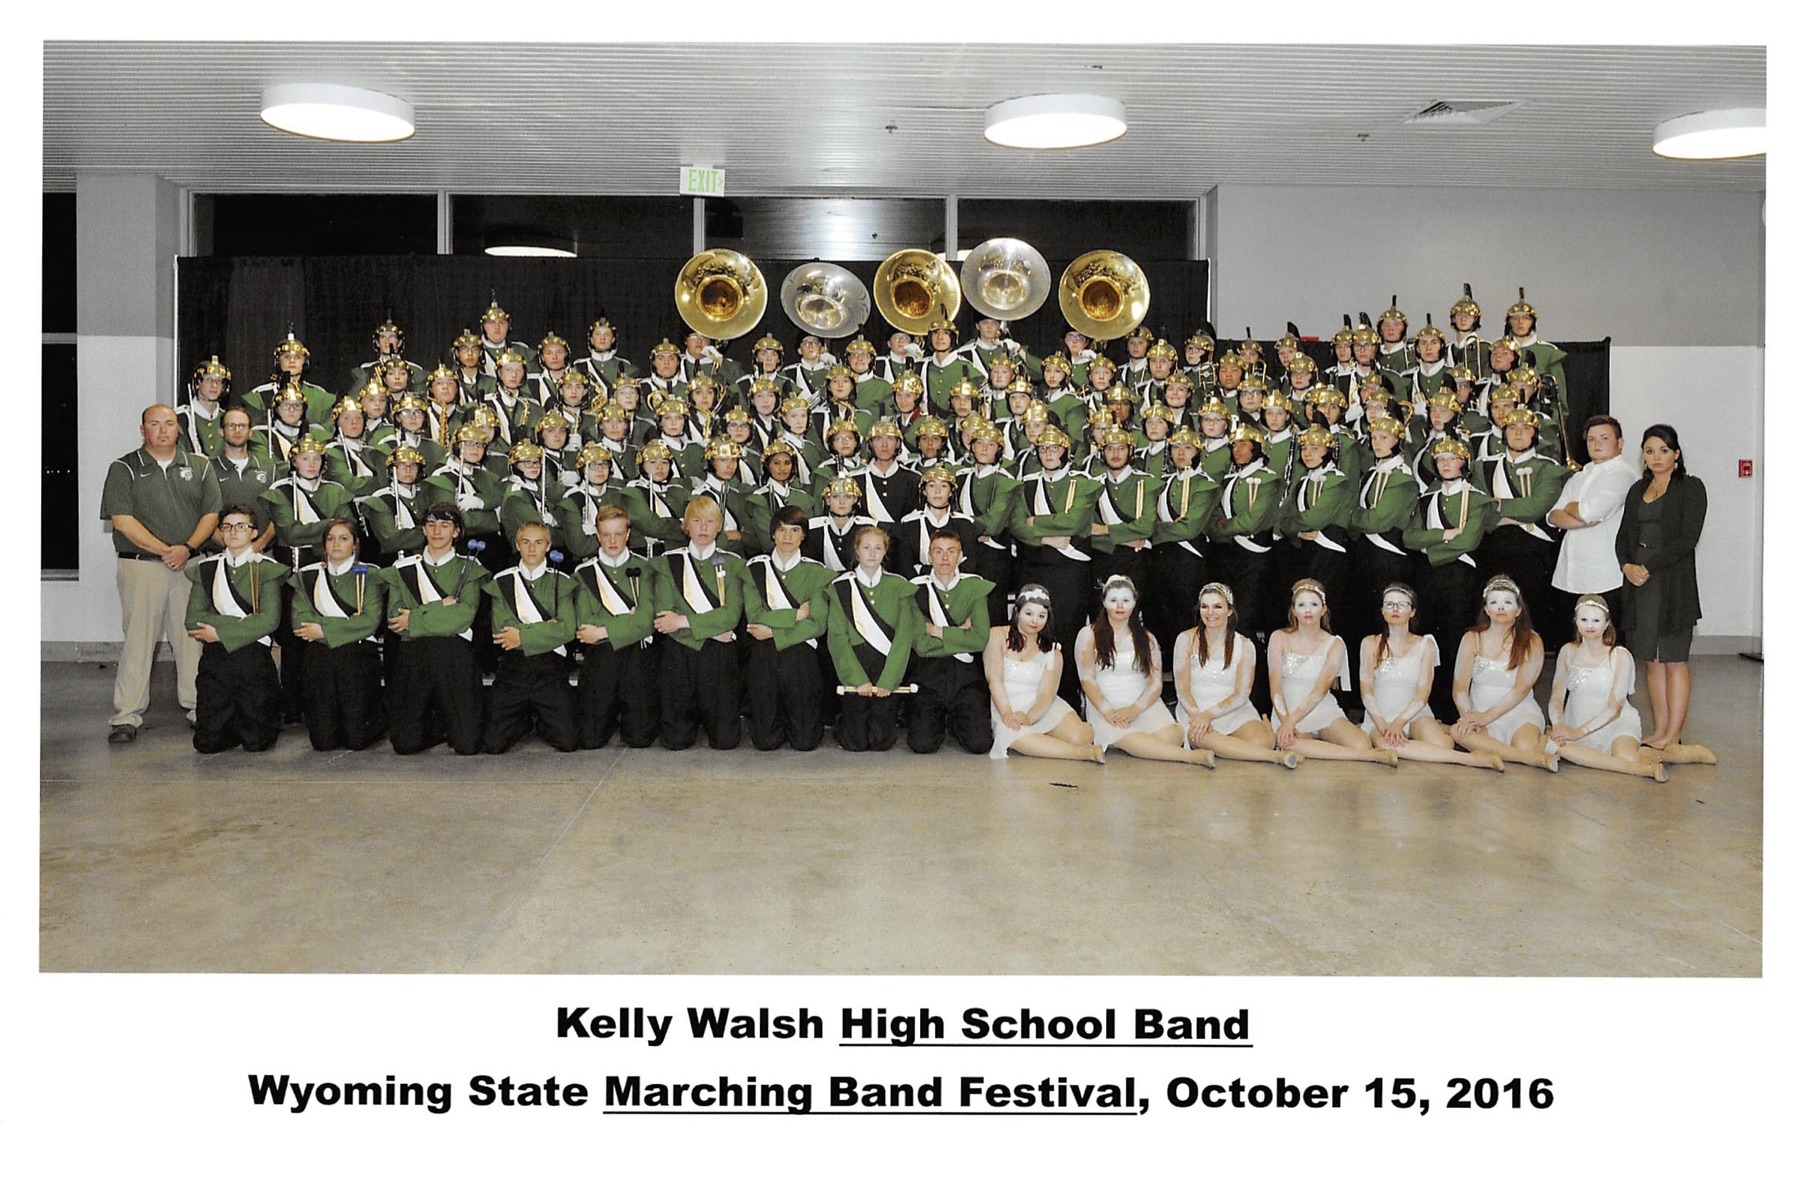 kw-marching-band-2016